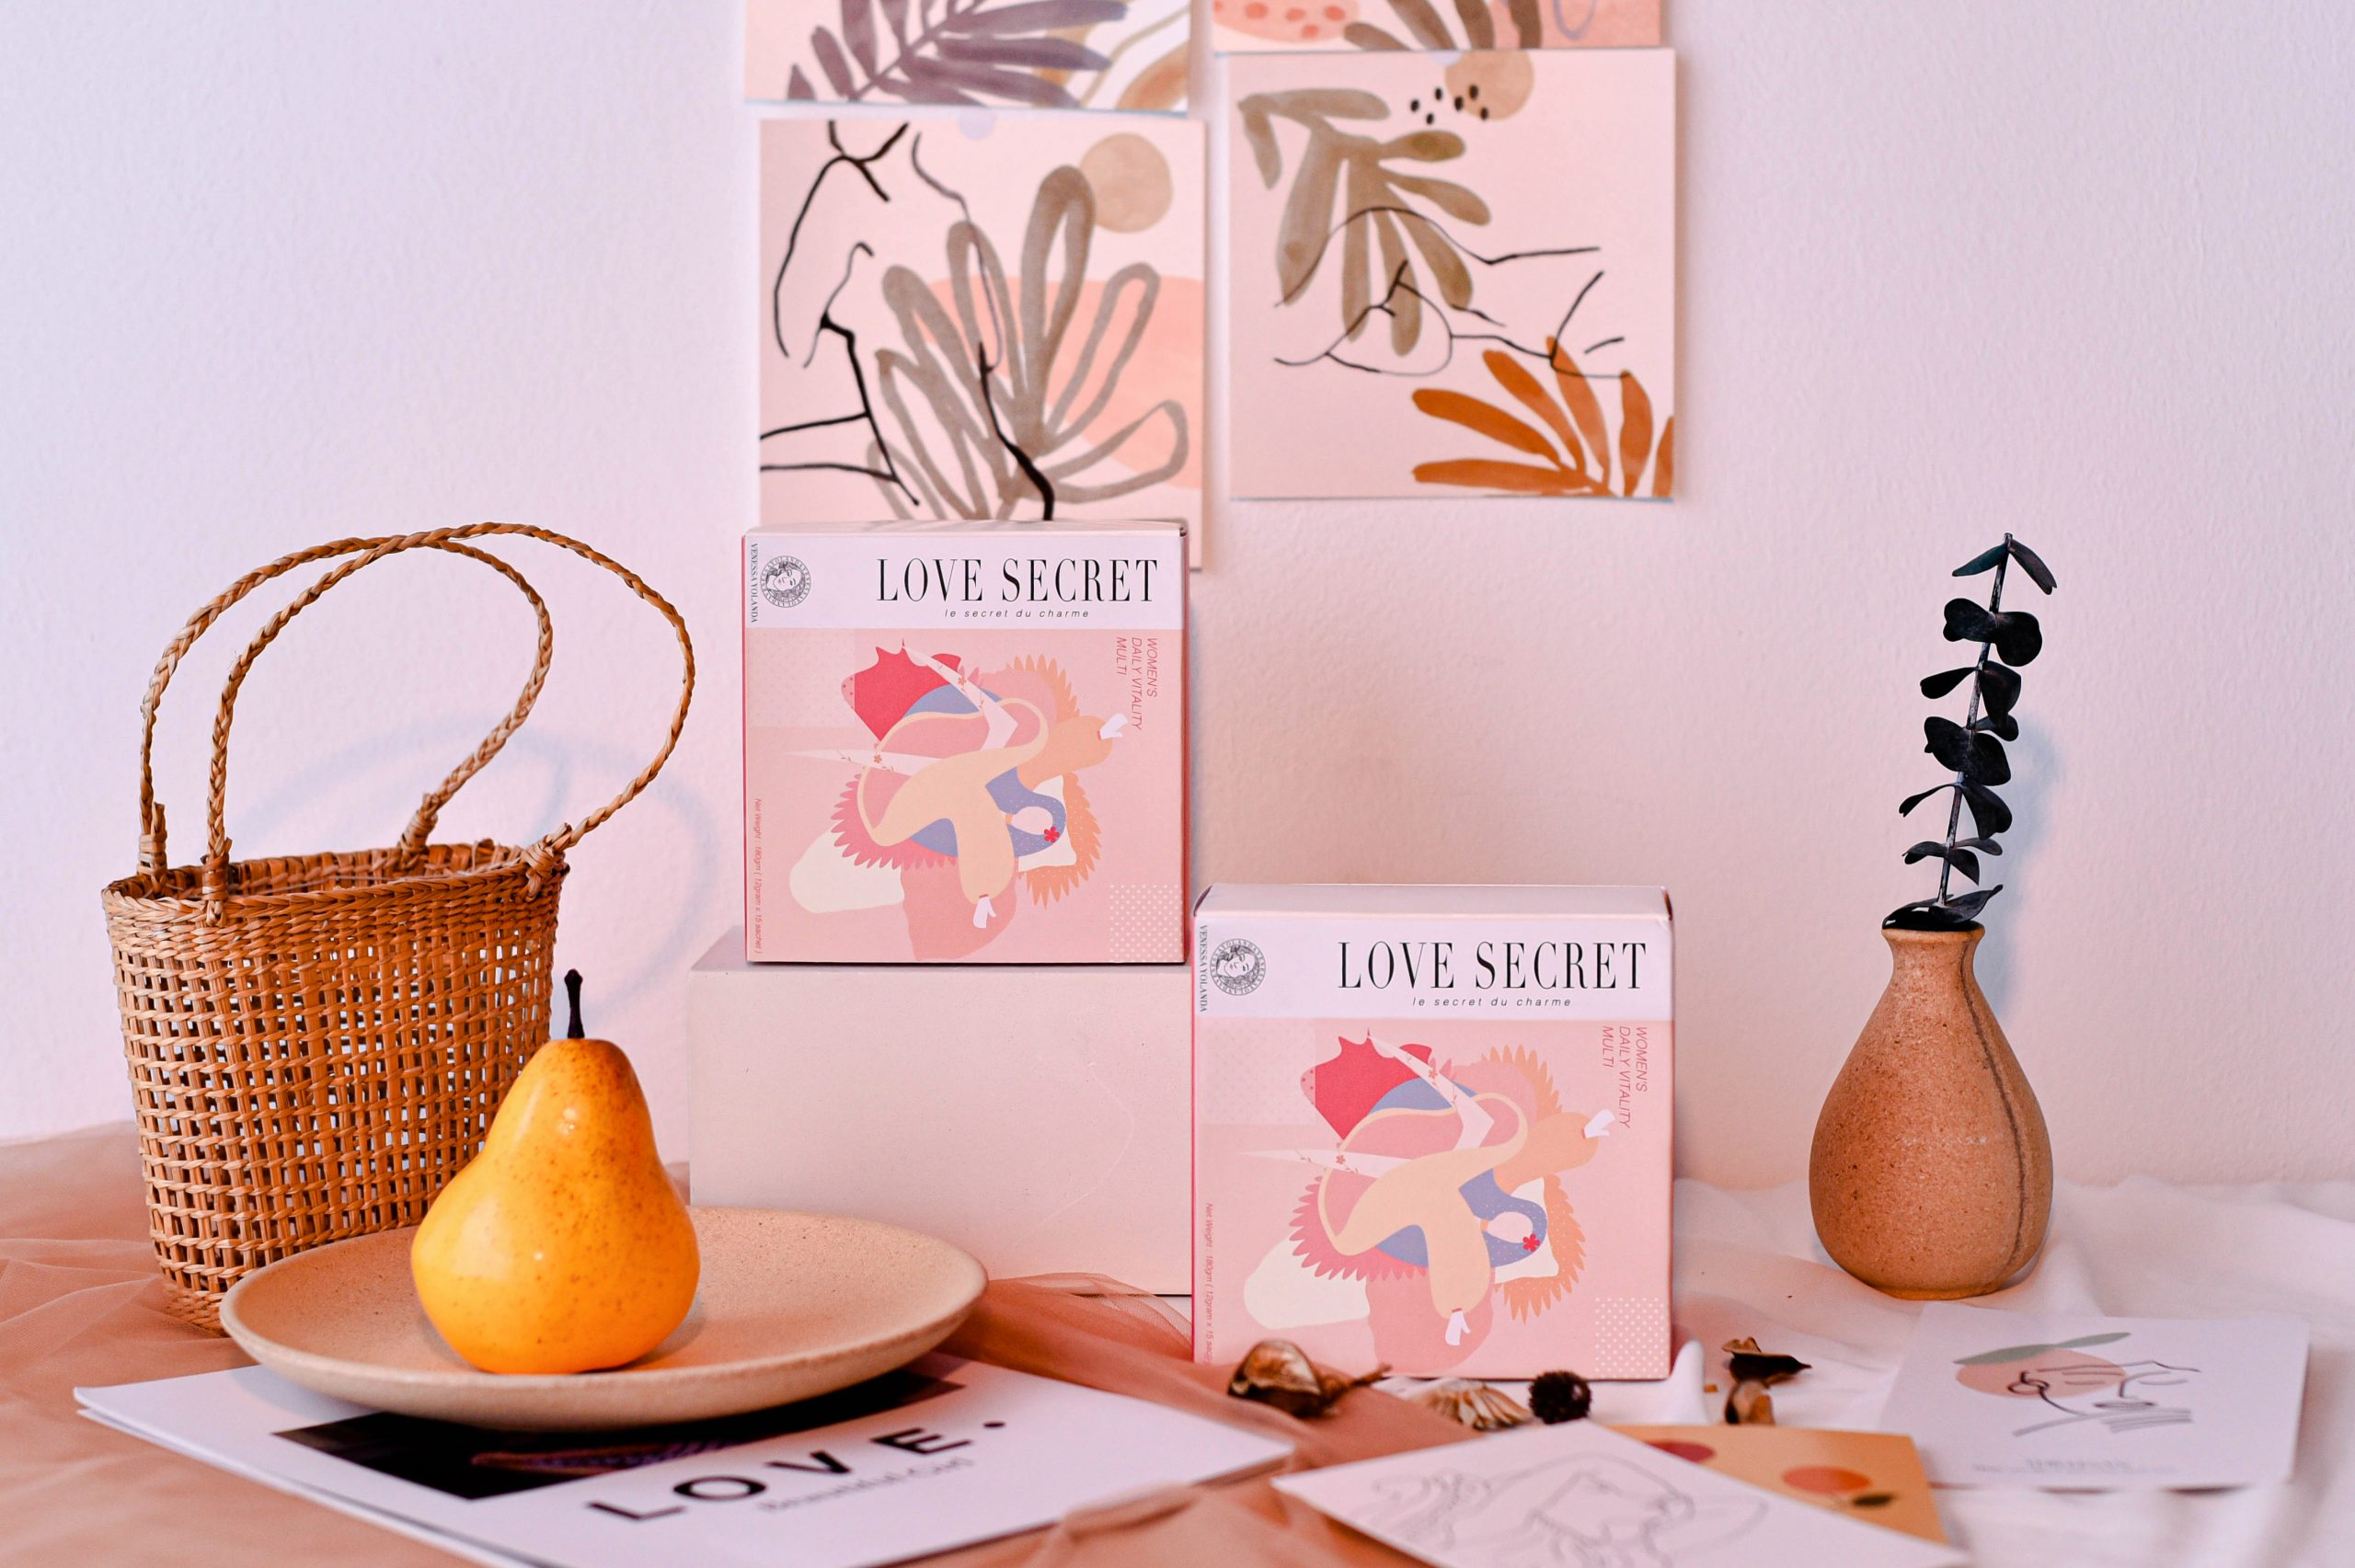 Product Photo Shooting for Love Secret 5 scaled